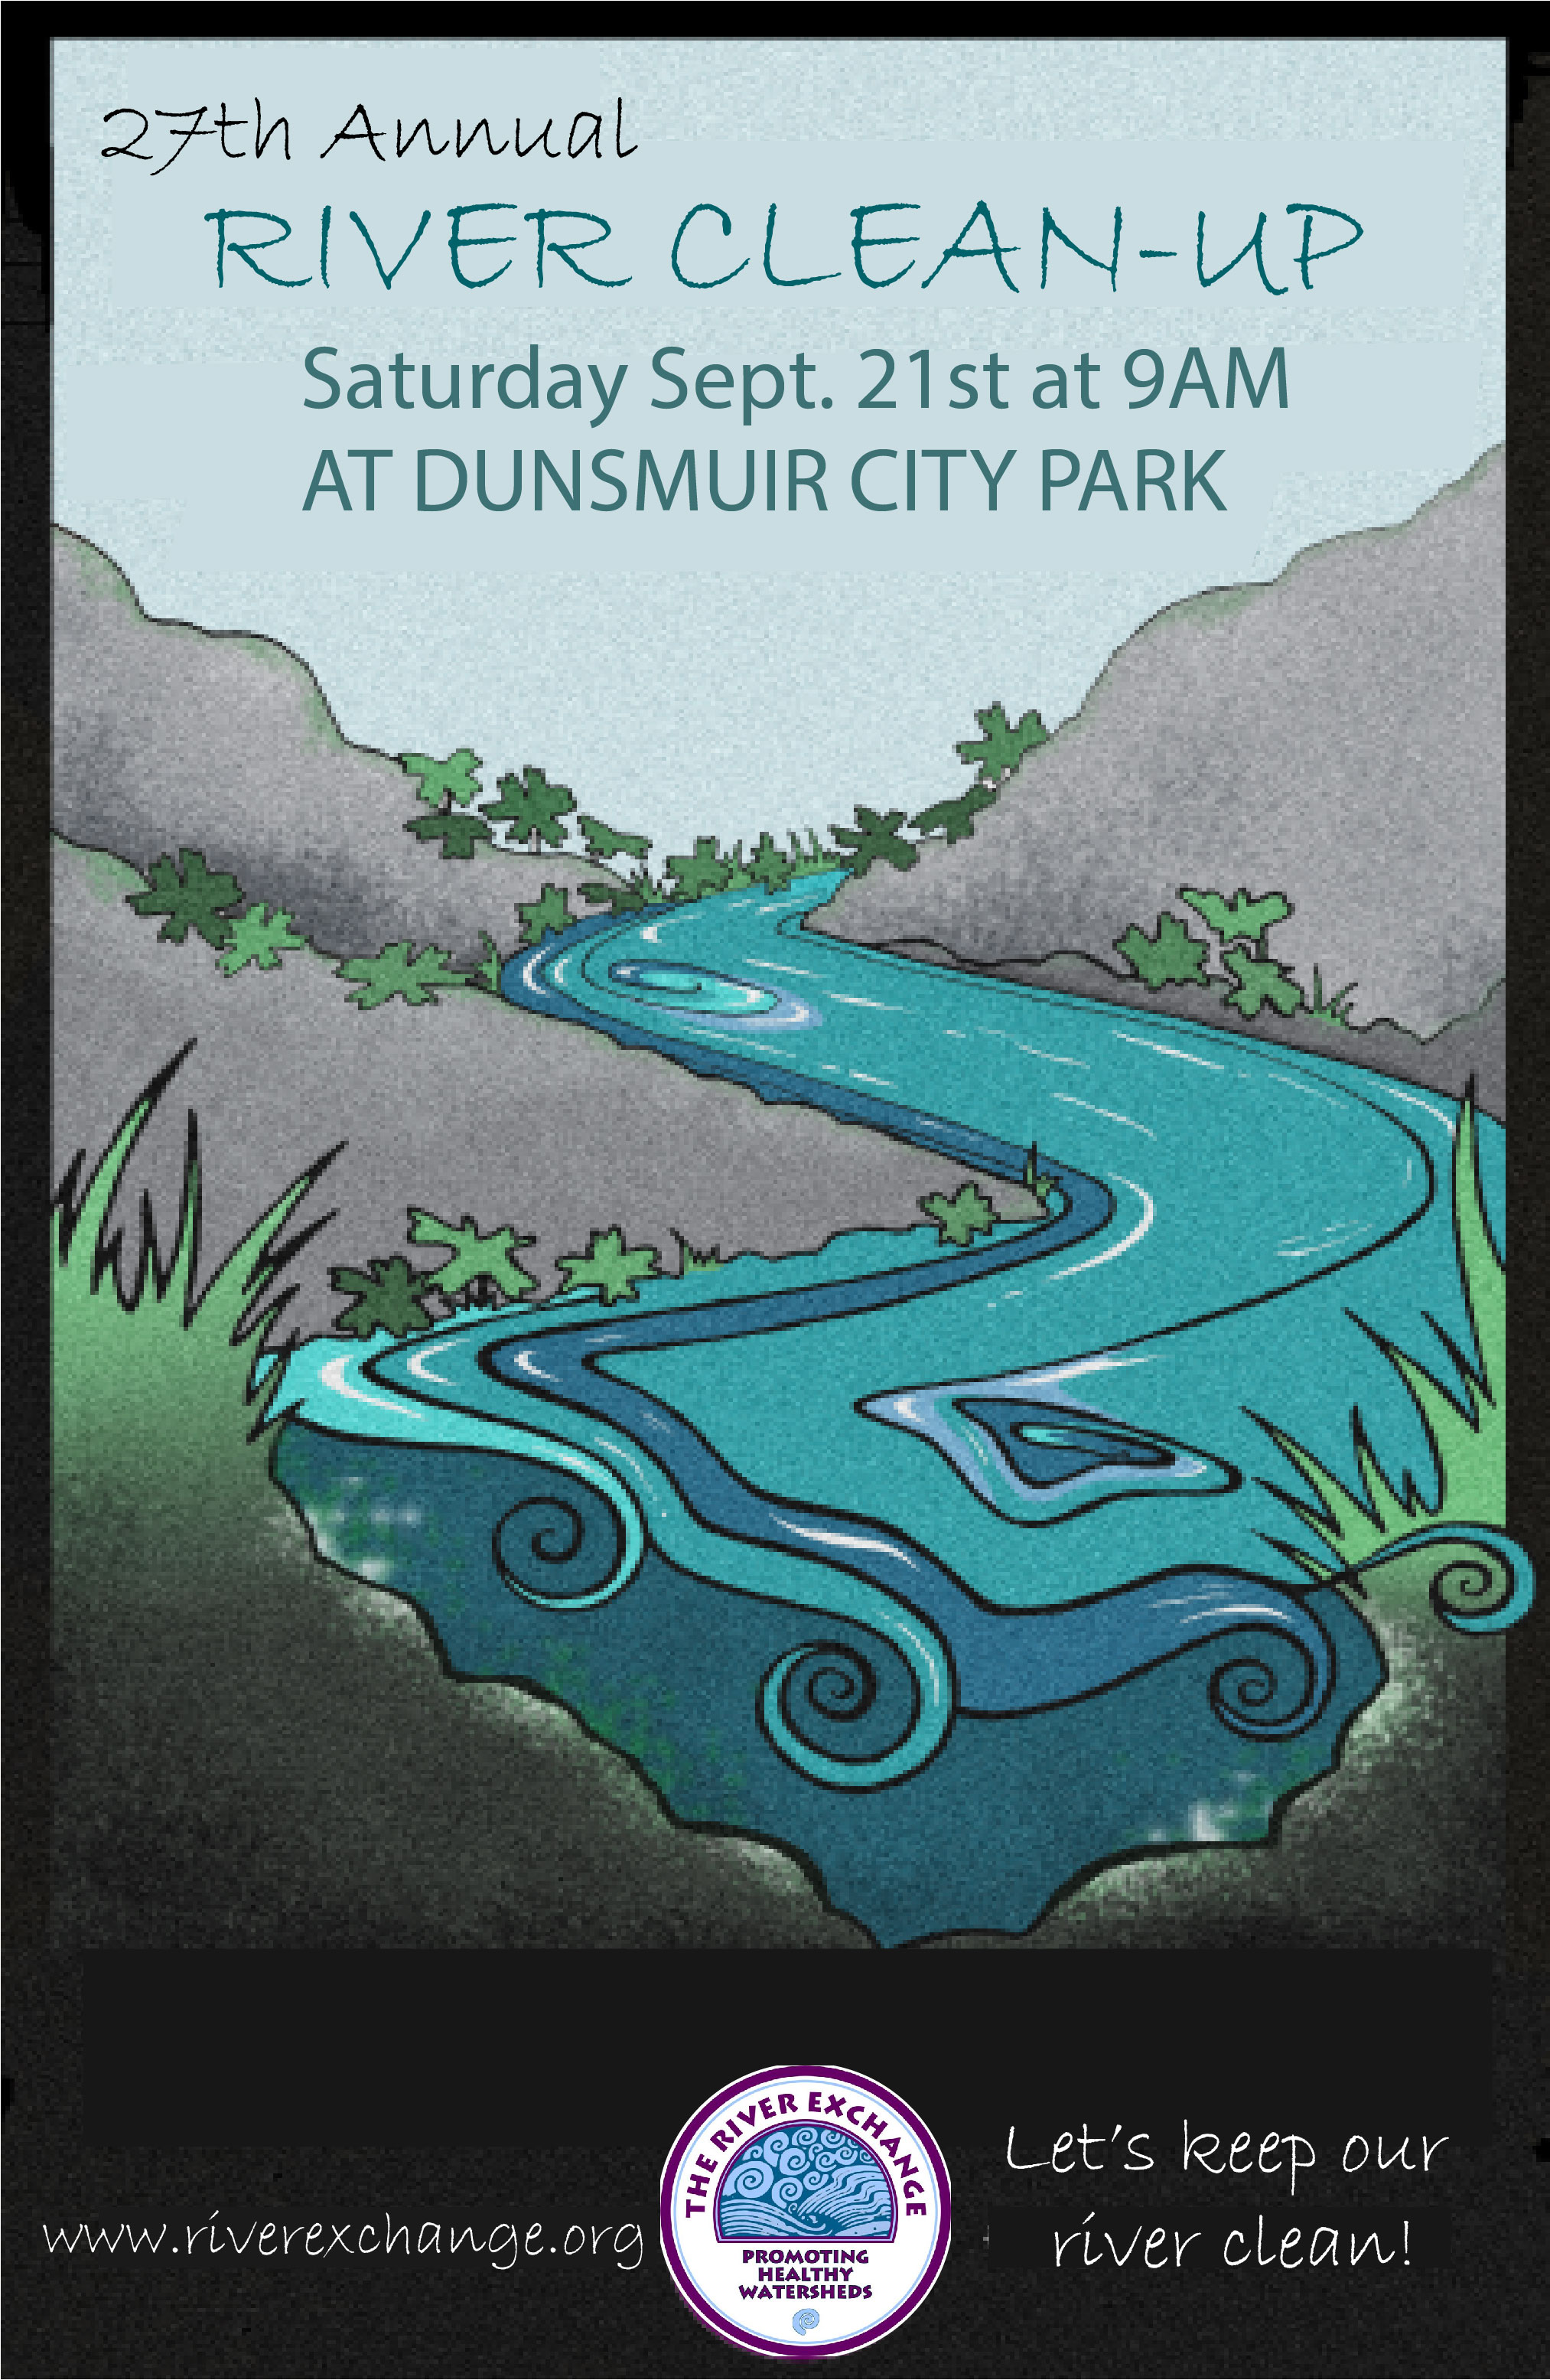 RiverCleanUp2019Flyer.jpg